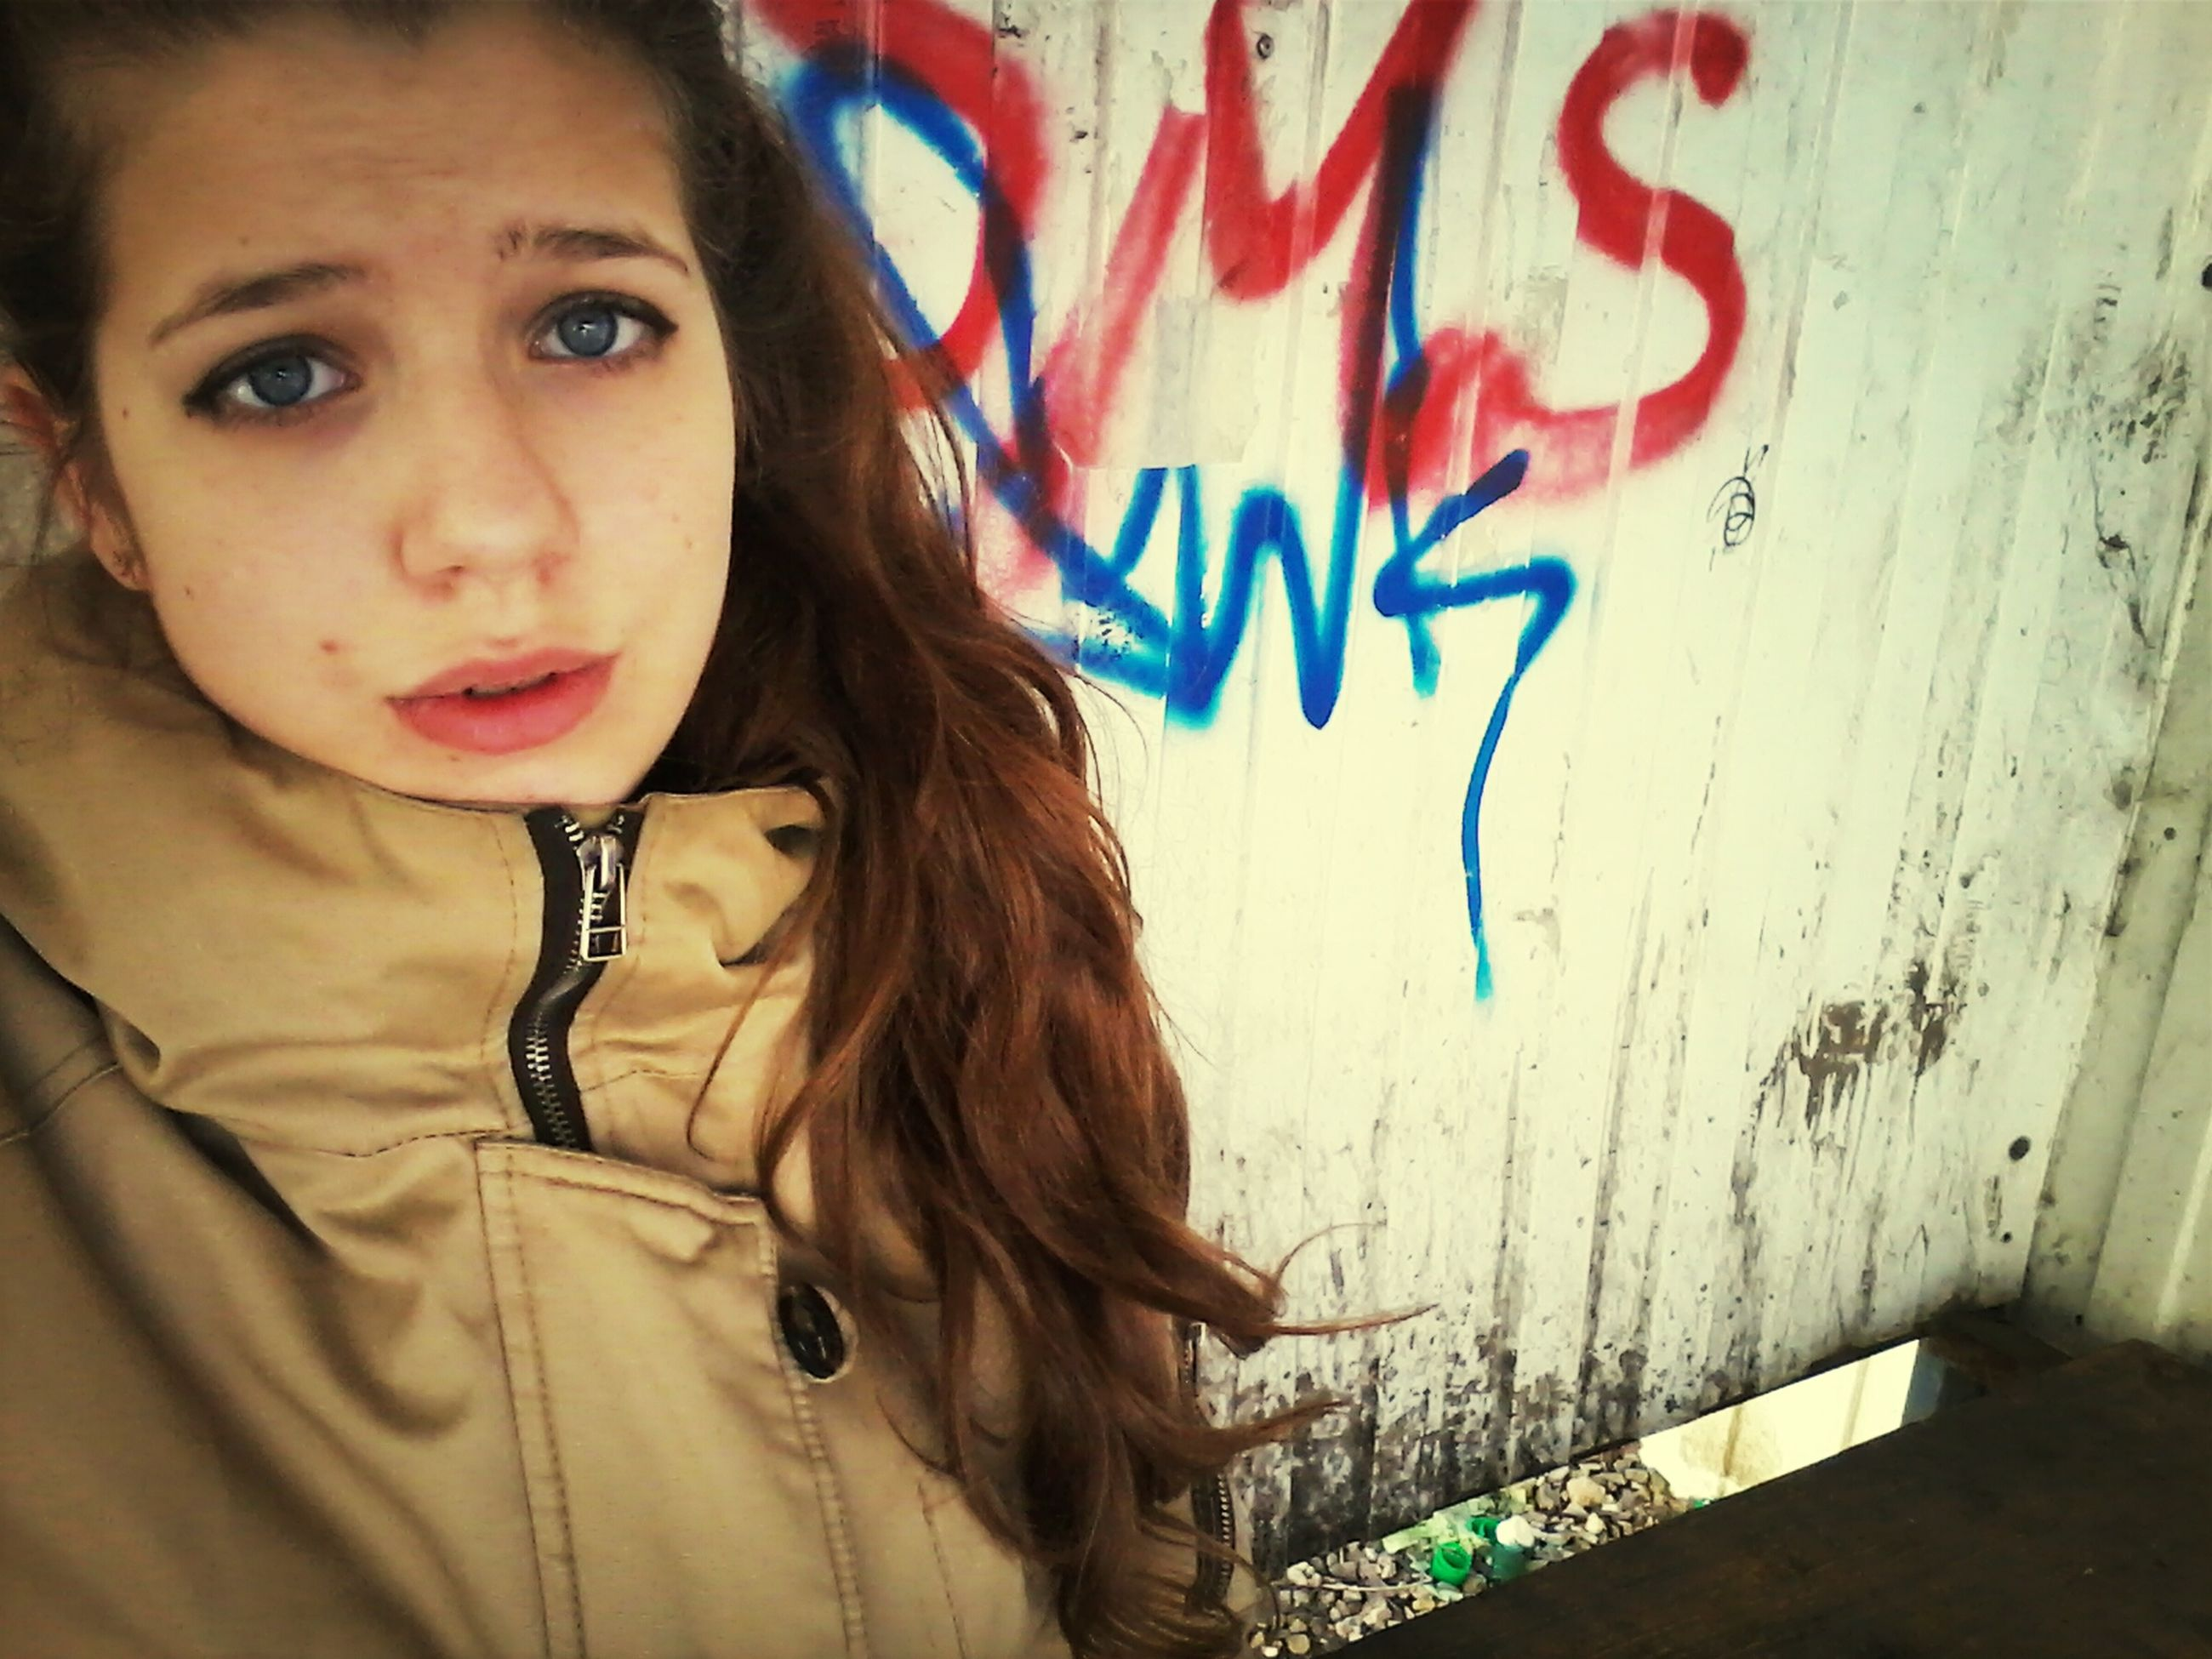 person, lifestyles, text, young adult, wall - building feature, graffiti, front view, leisure activity, young women, looking at camera, portrait, western script, communication, long hair, casual clothing, standing, waist up, headshot